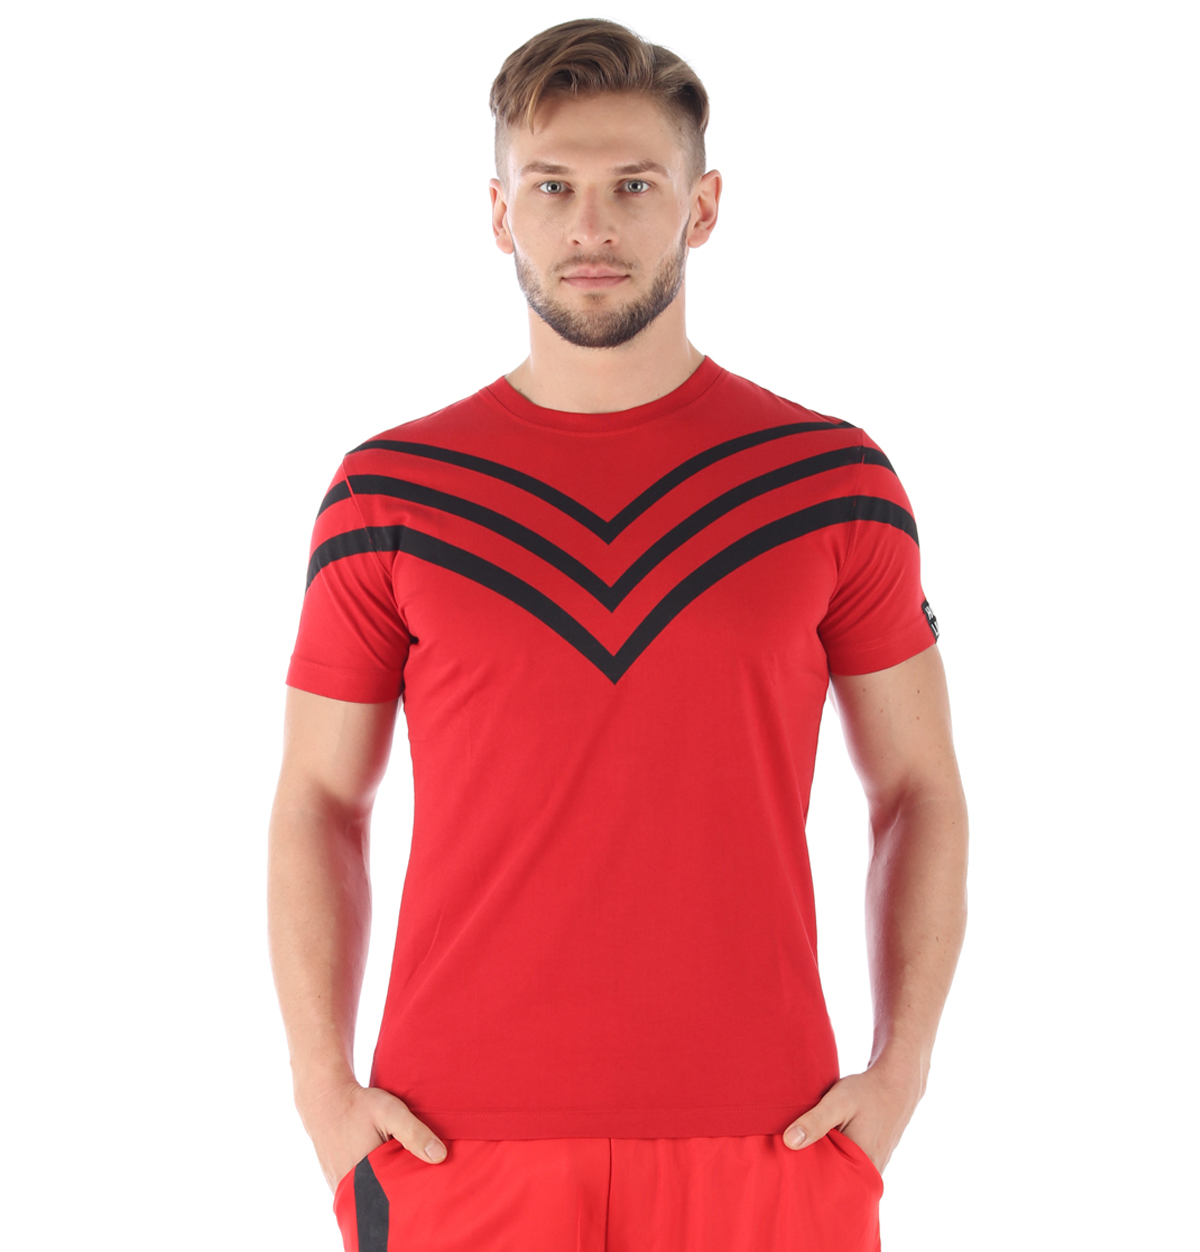 MRNT_V_STRIPE_RED_FRONT.jpg